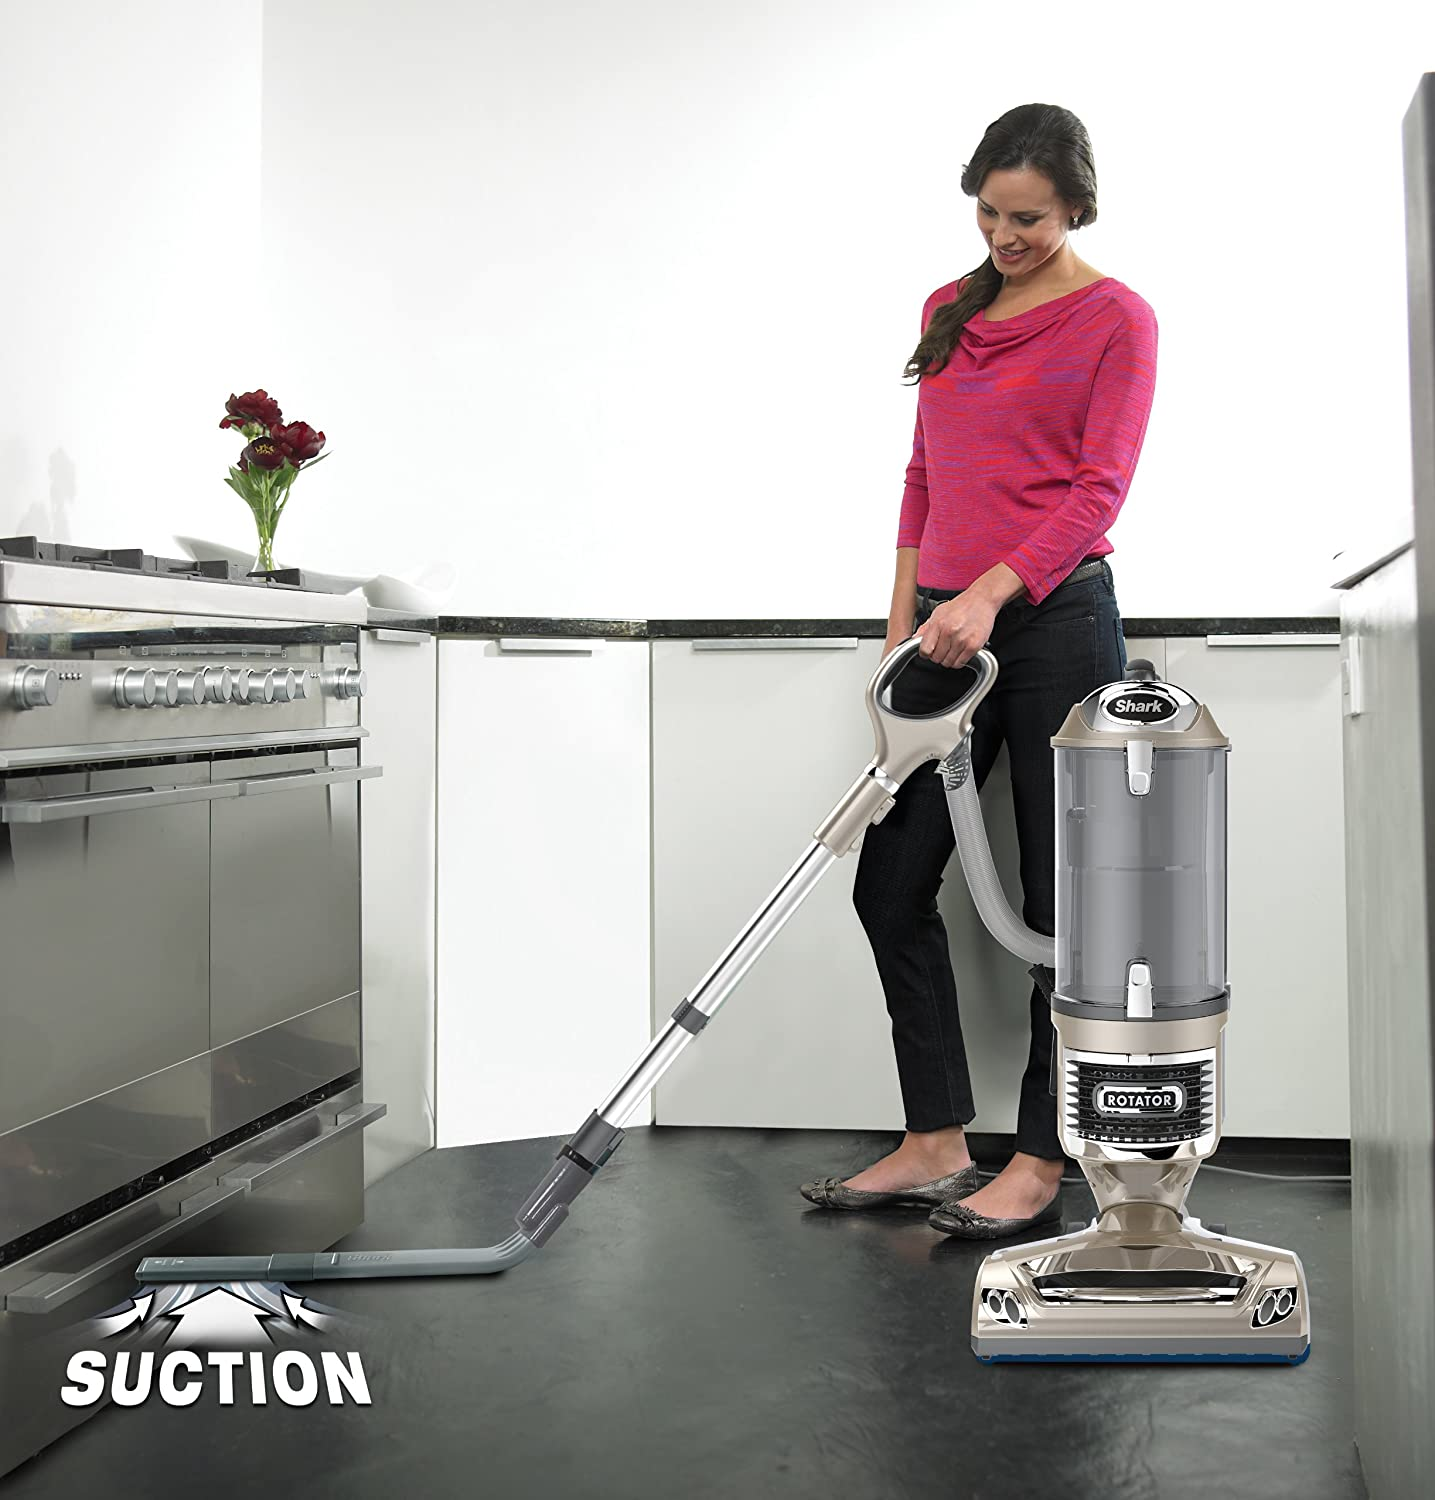 Bed bath and beyond vacuum cleaner - Amazon Com Shark Rotator Pro Complete Lift Away Nv552 Household Upright Vacuums